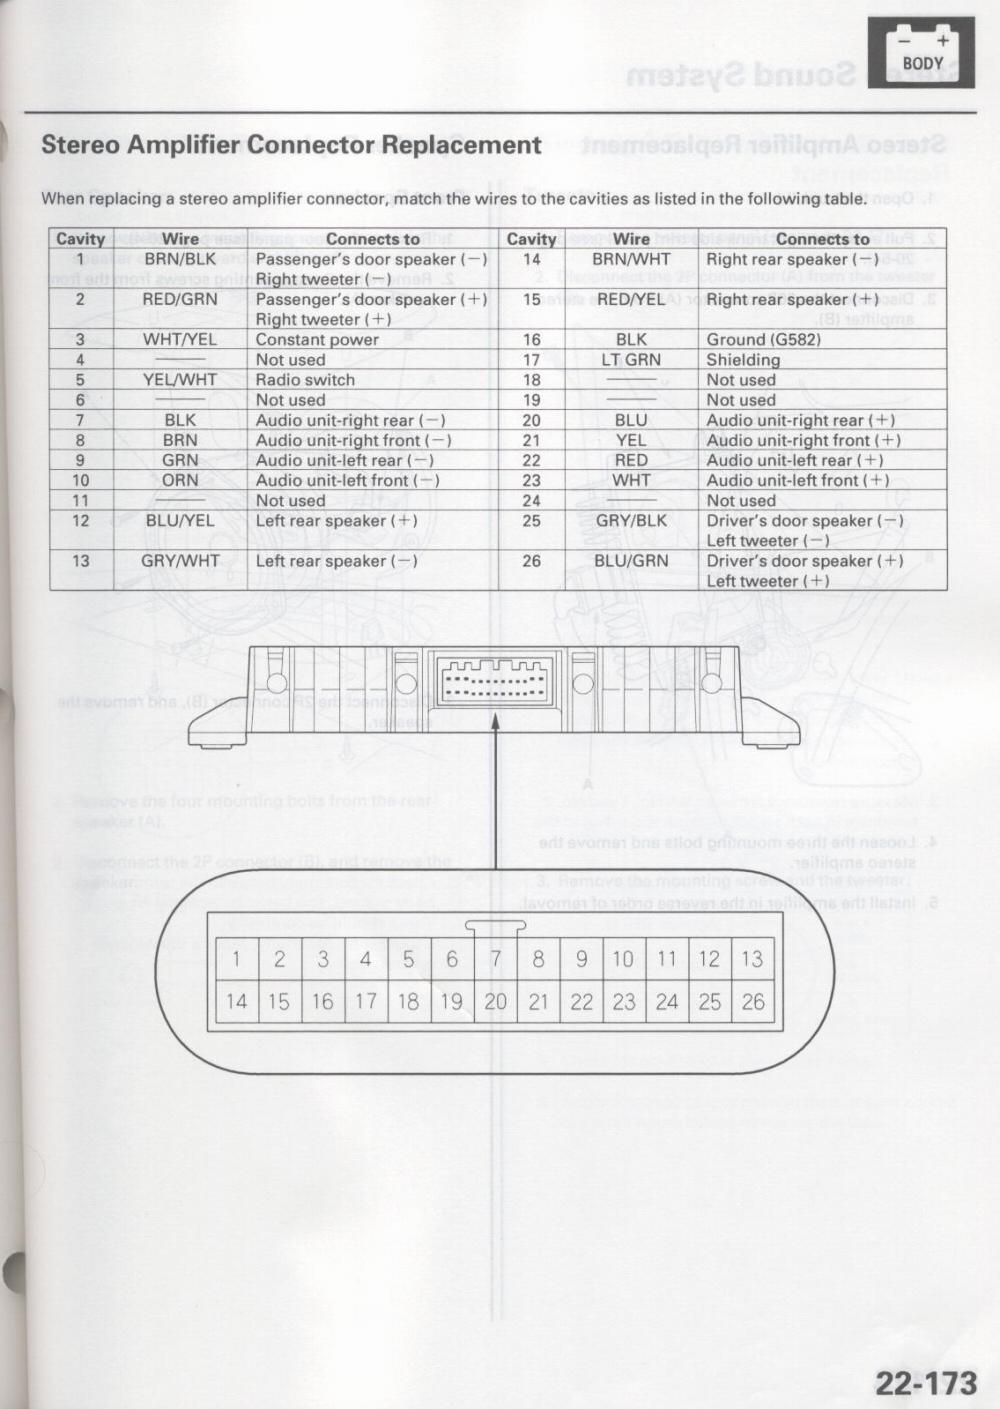 Acura 2002 TL car stereo amplifier wiring diagram harness car radio stereo audio wiring diagram autoradio connector wire  at alyssarenee.co